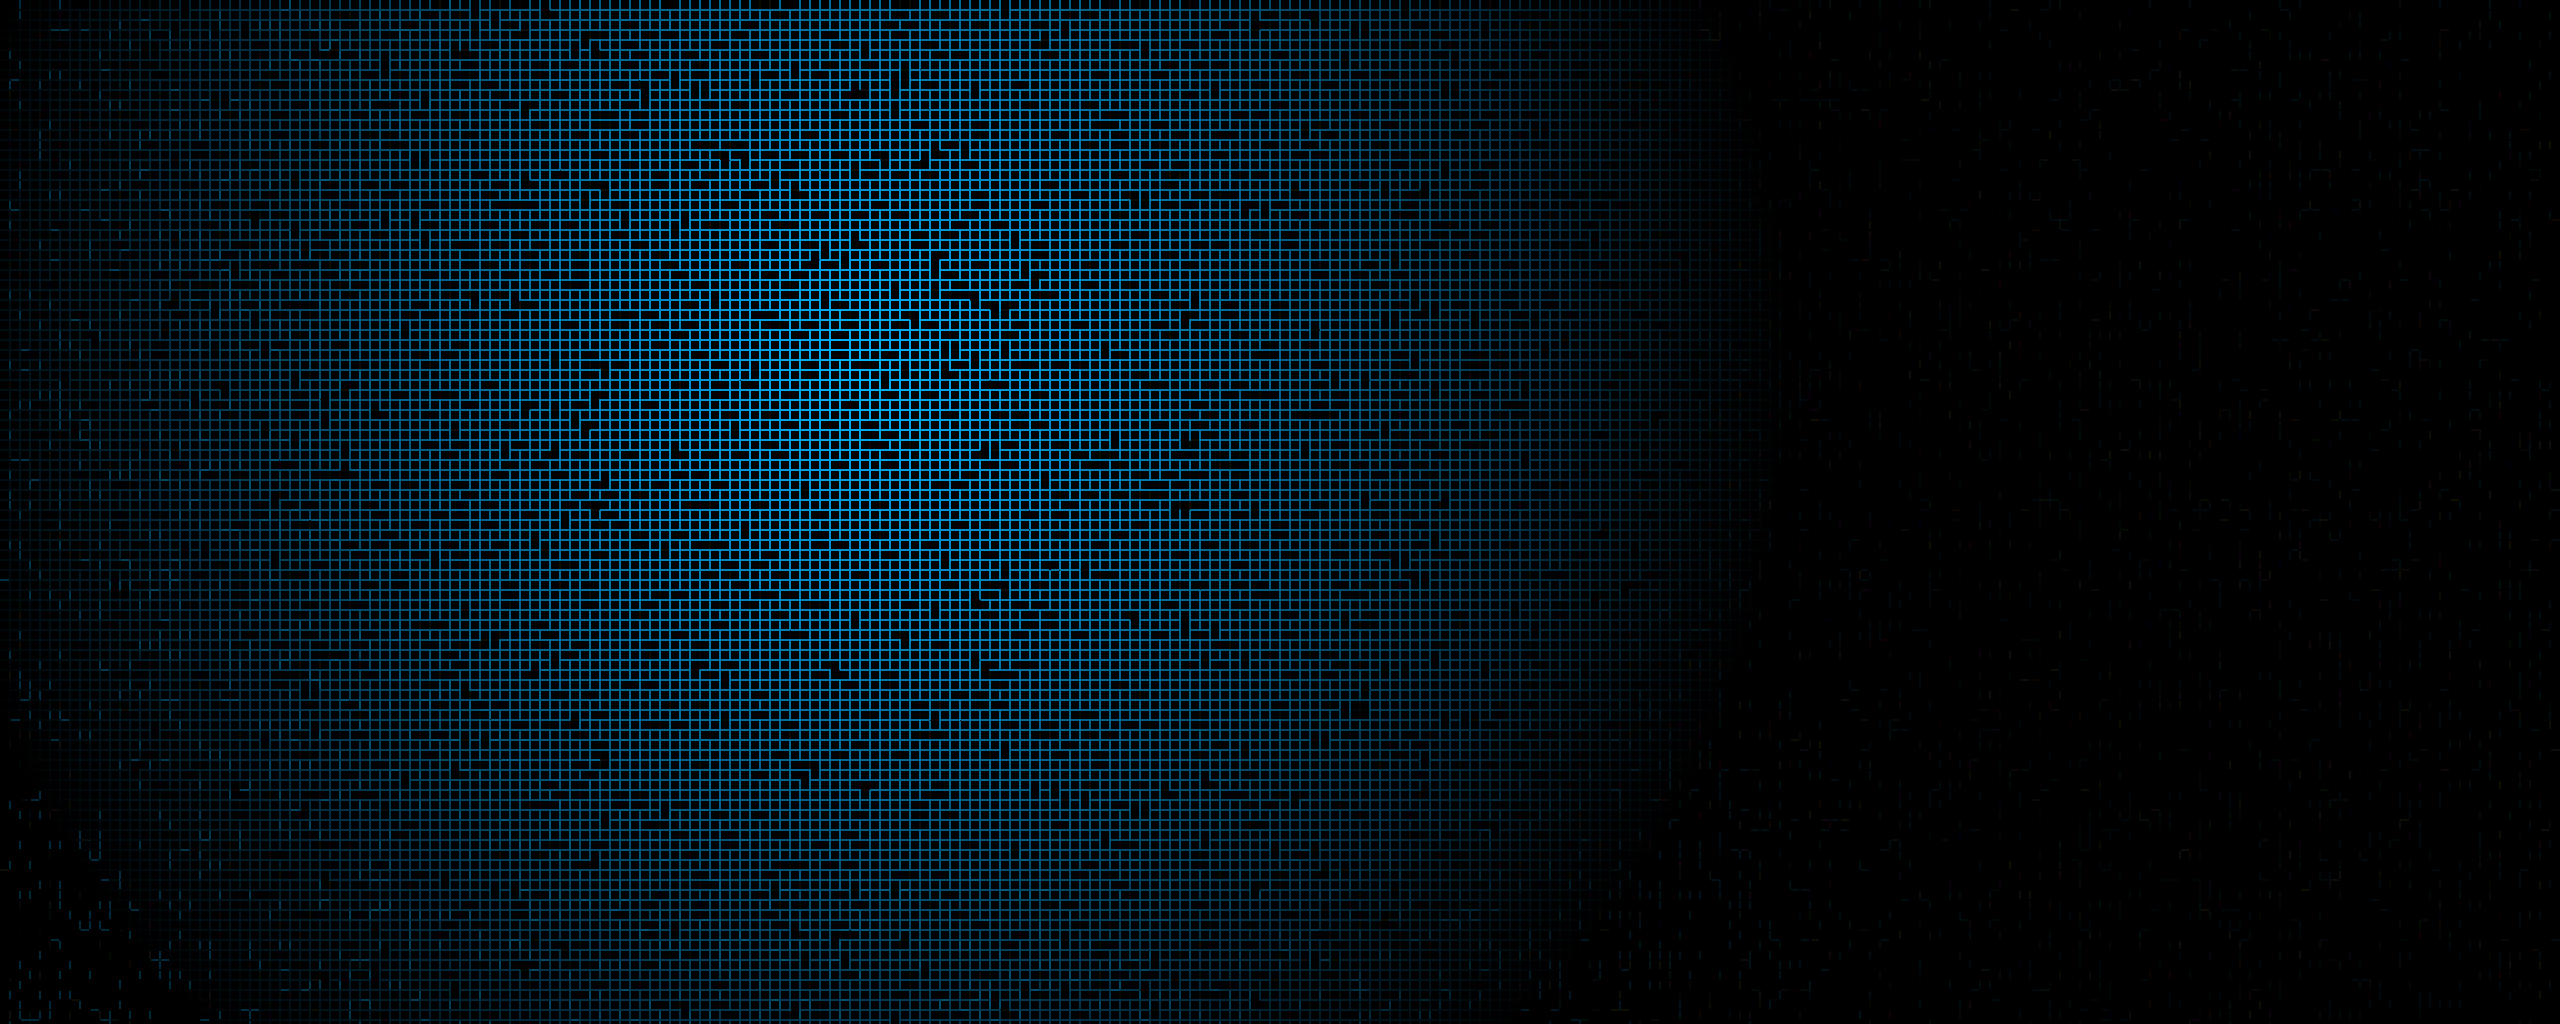 Wallpaper Blue Black